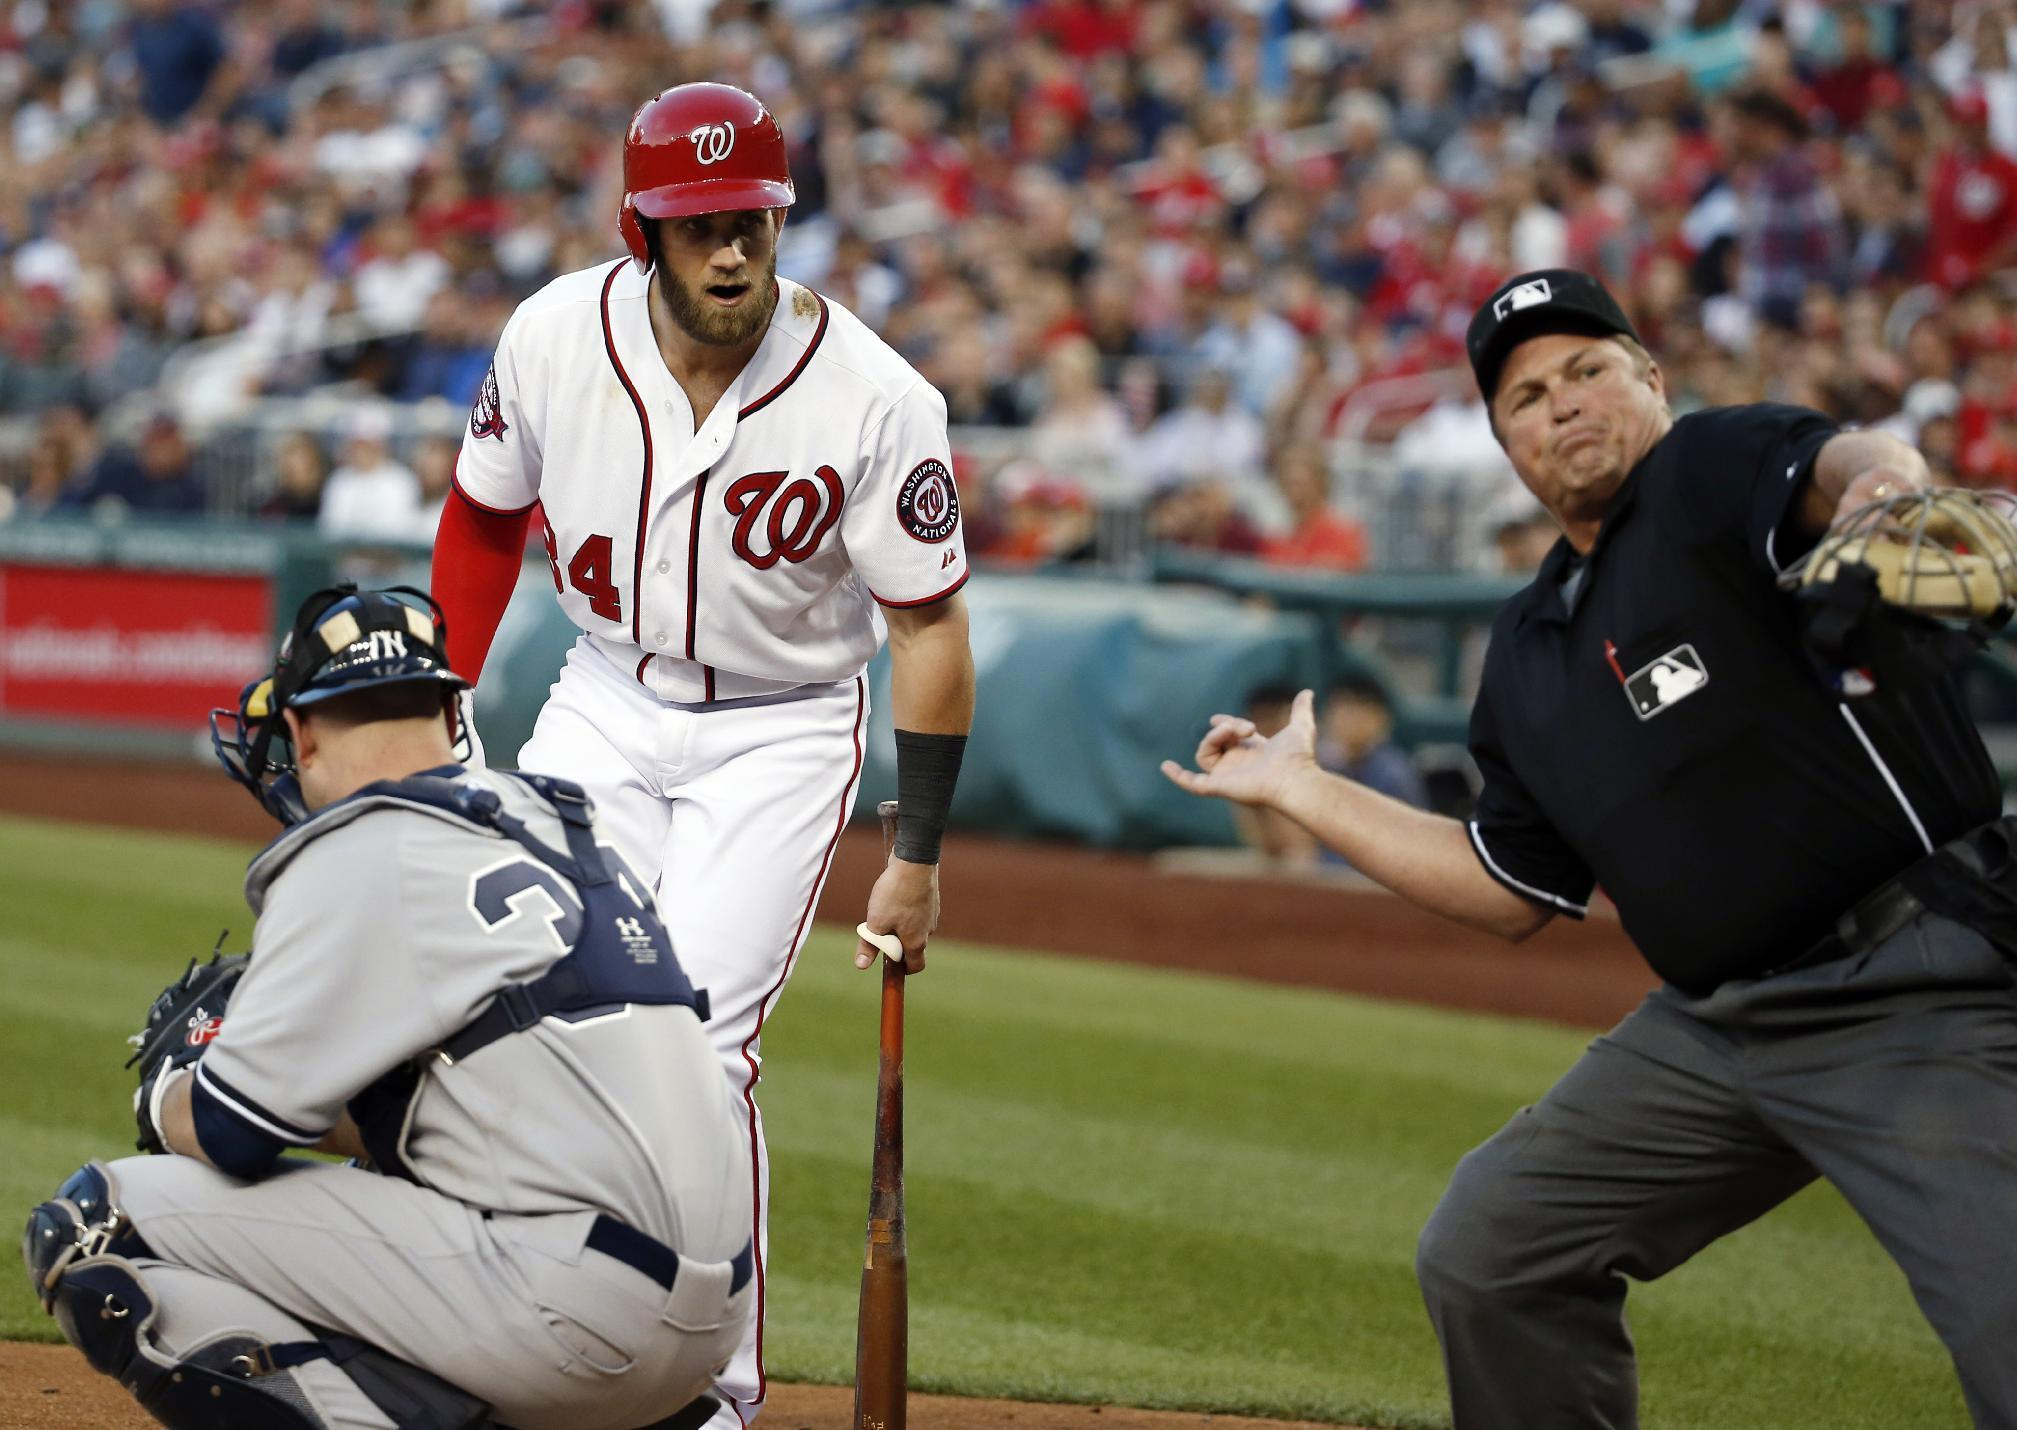 From HRs to ejections, rarely a dull moment for Bryce Harper